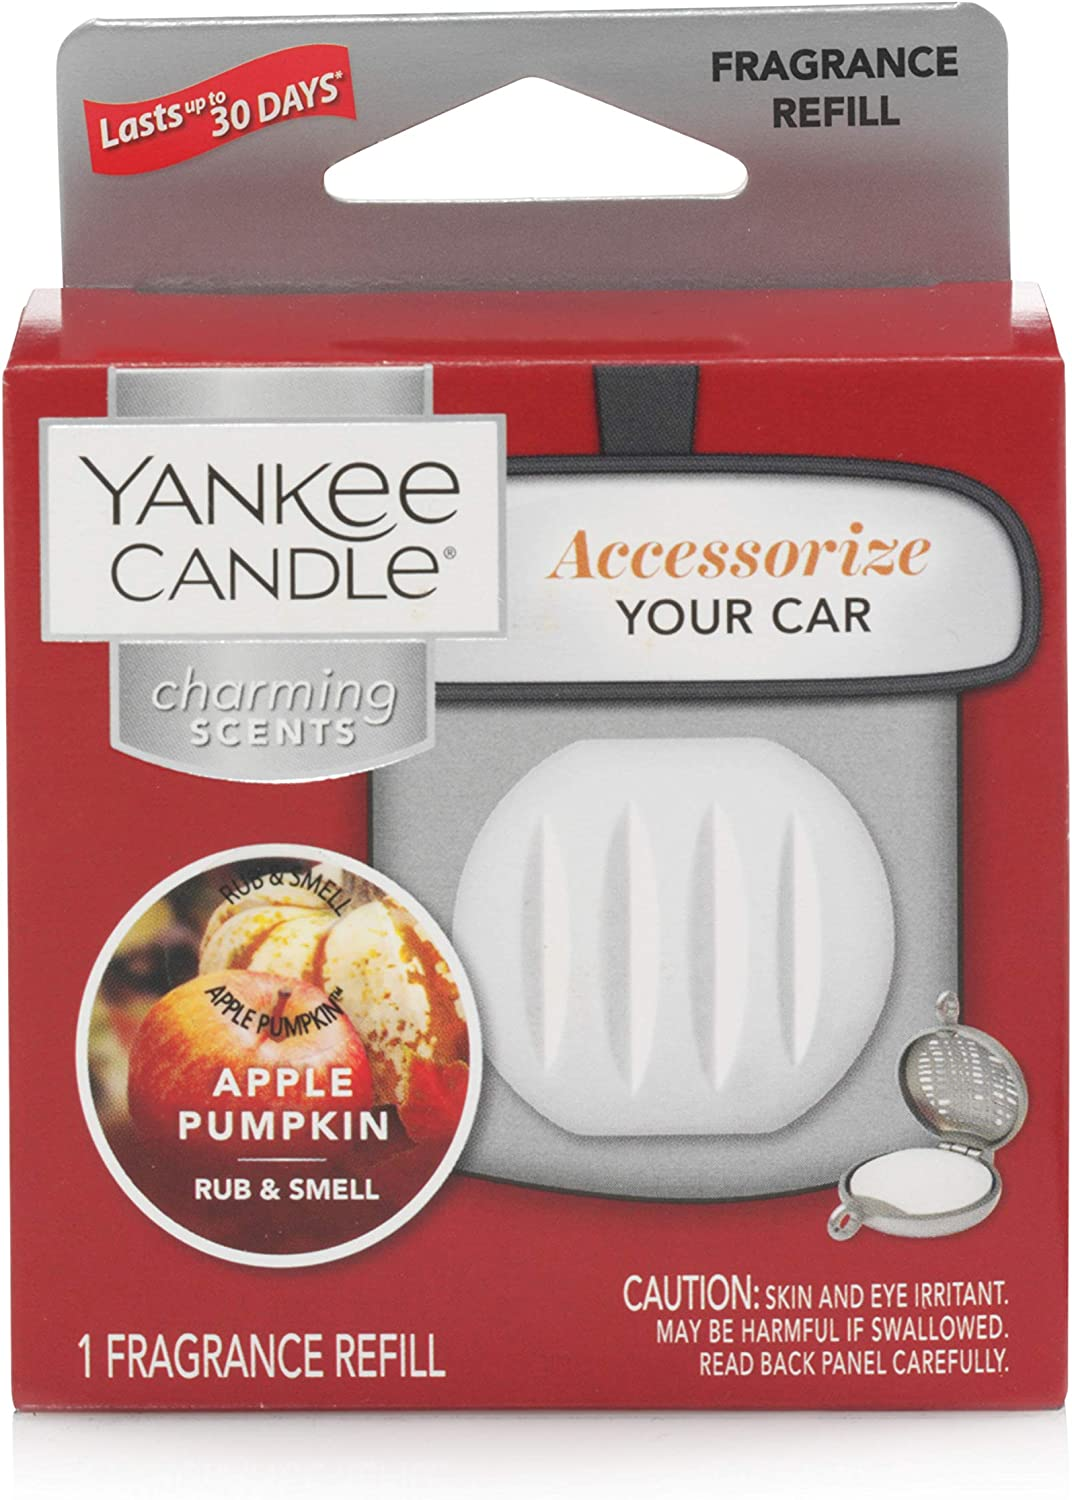 Yankee Candle Charming Scents Car Air Freshener Refill, Kits, Apple Pumpkin